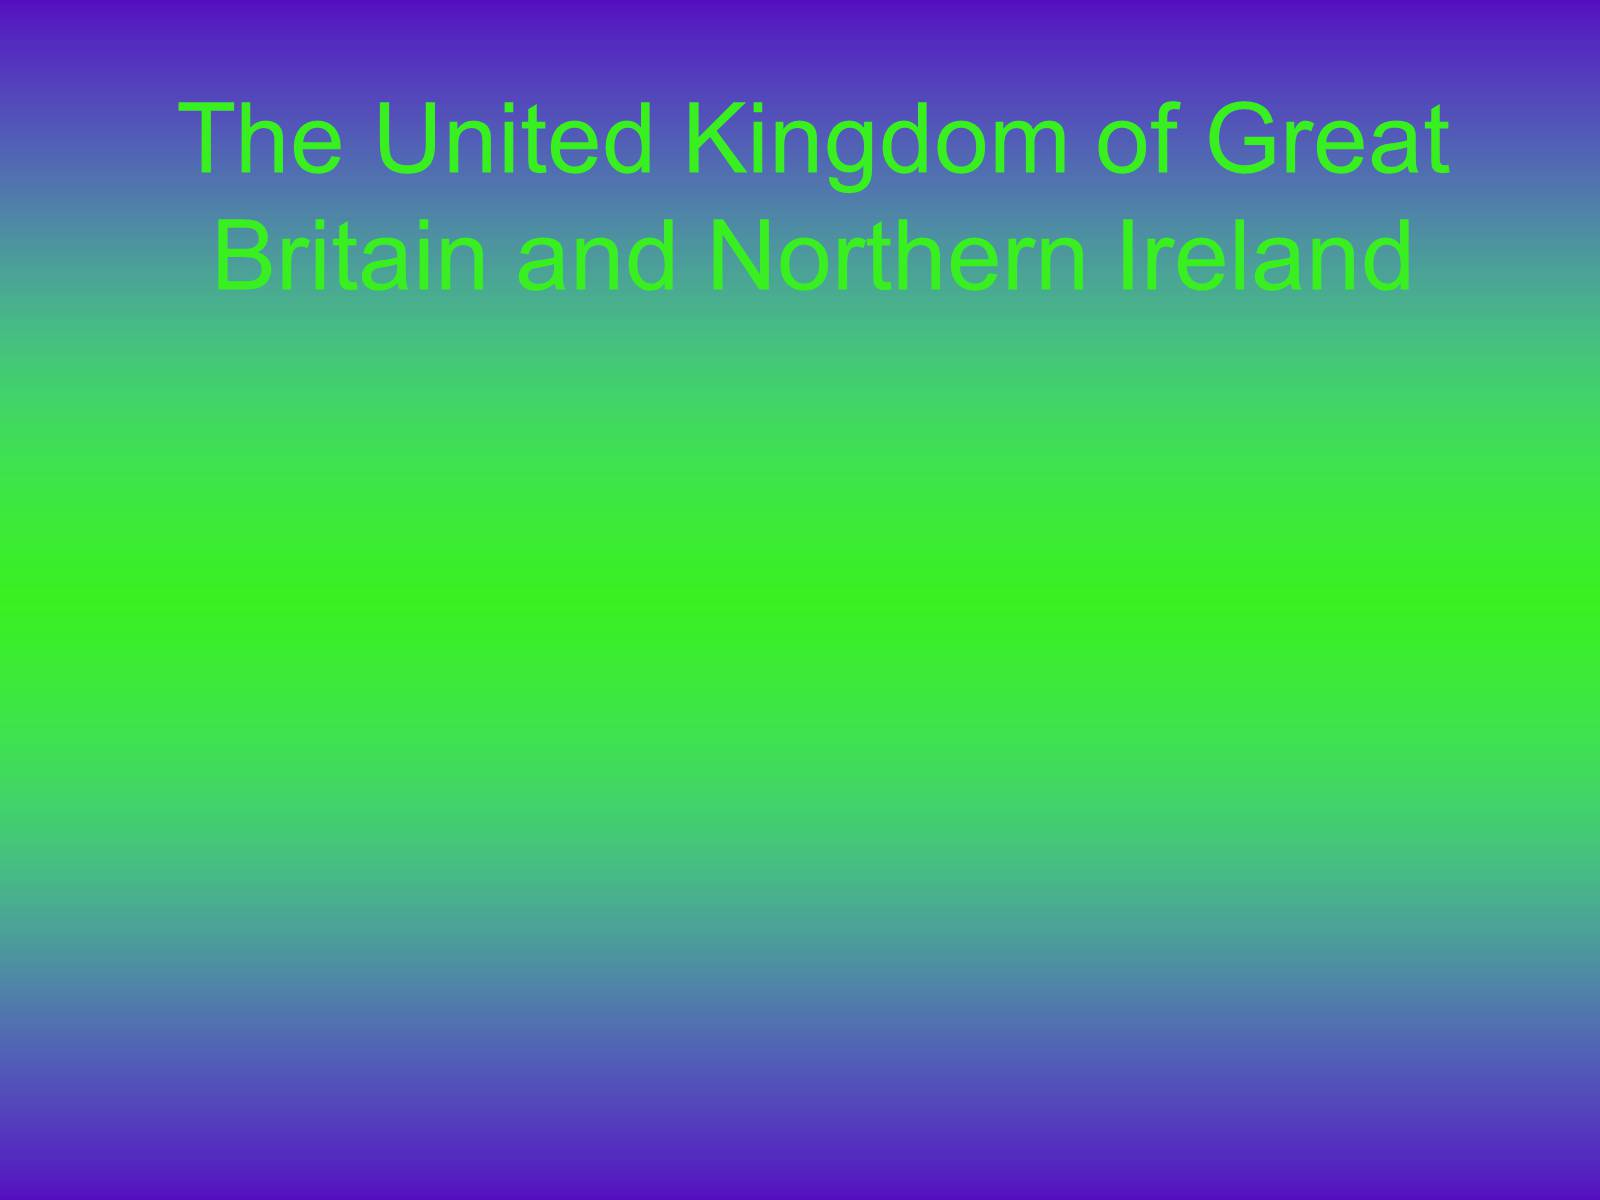 Презентація на тему «The United Kingdom of Great Britain and Northern Ireland» (варіант 1) - Слайд #1